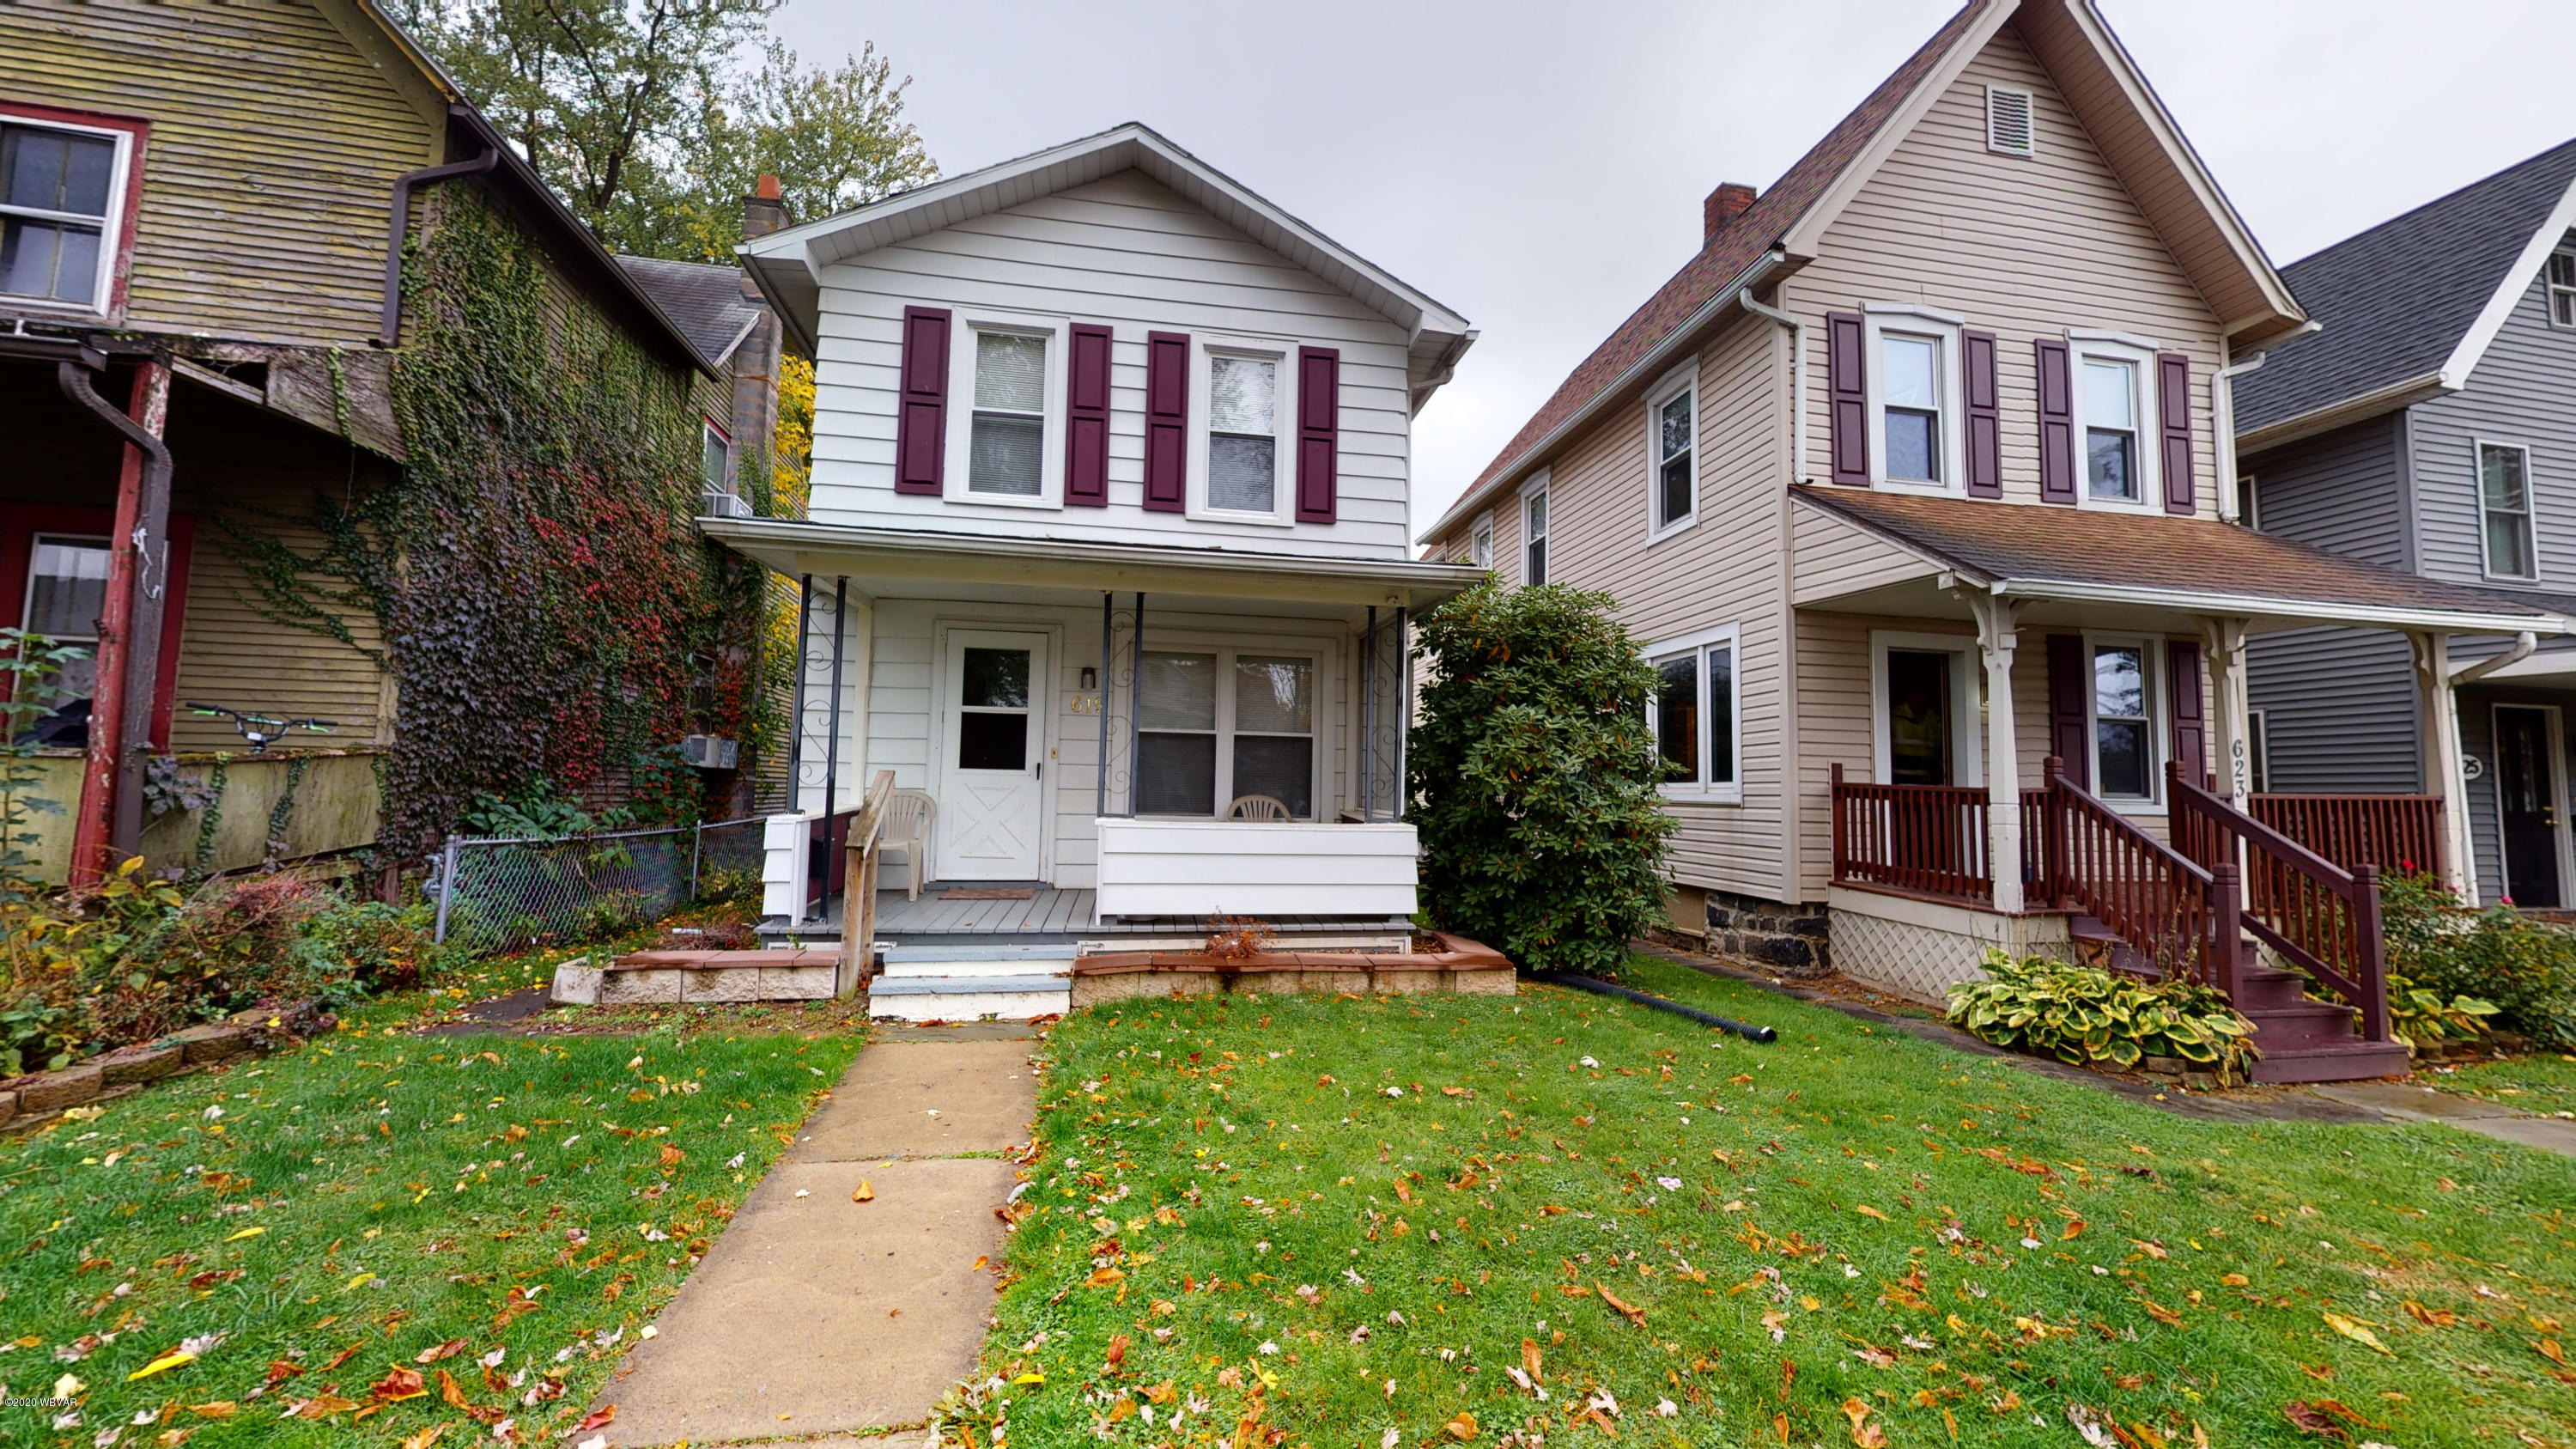 619 6TH AVENUE, Williamsport, PA 17701, 3 Bedrooms Bedrooms, ,2 BathroomsBathrooms,Residential,For sale,6TH,WB-91353